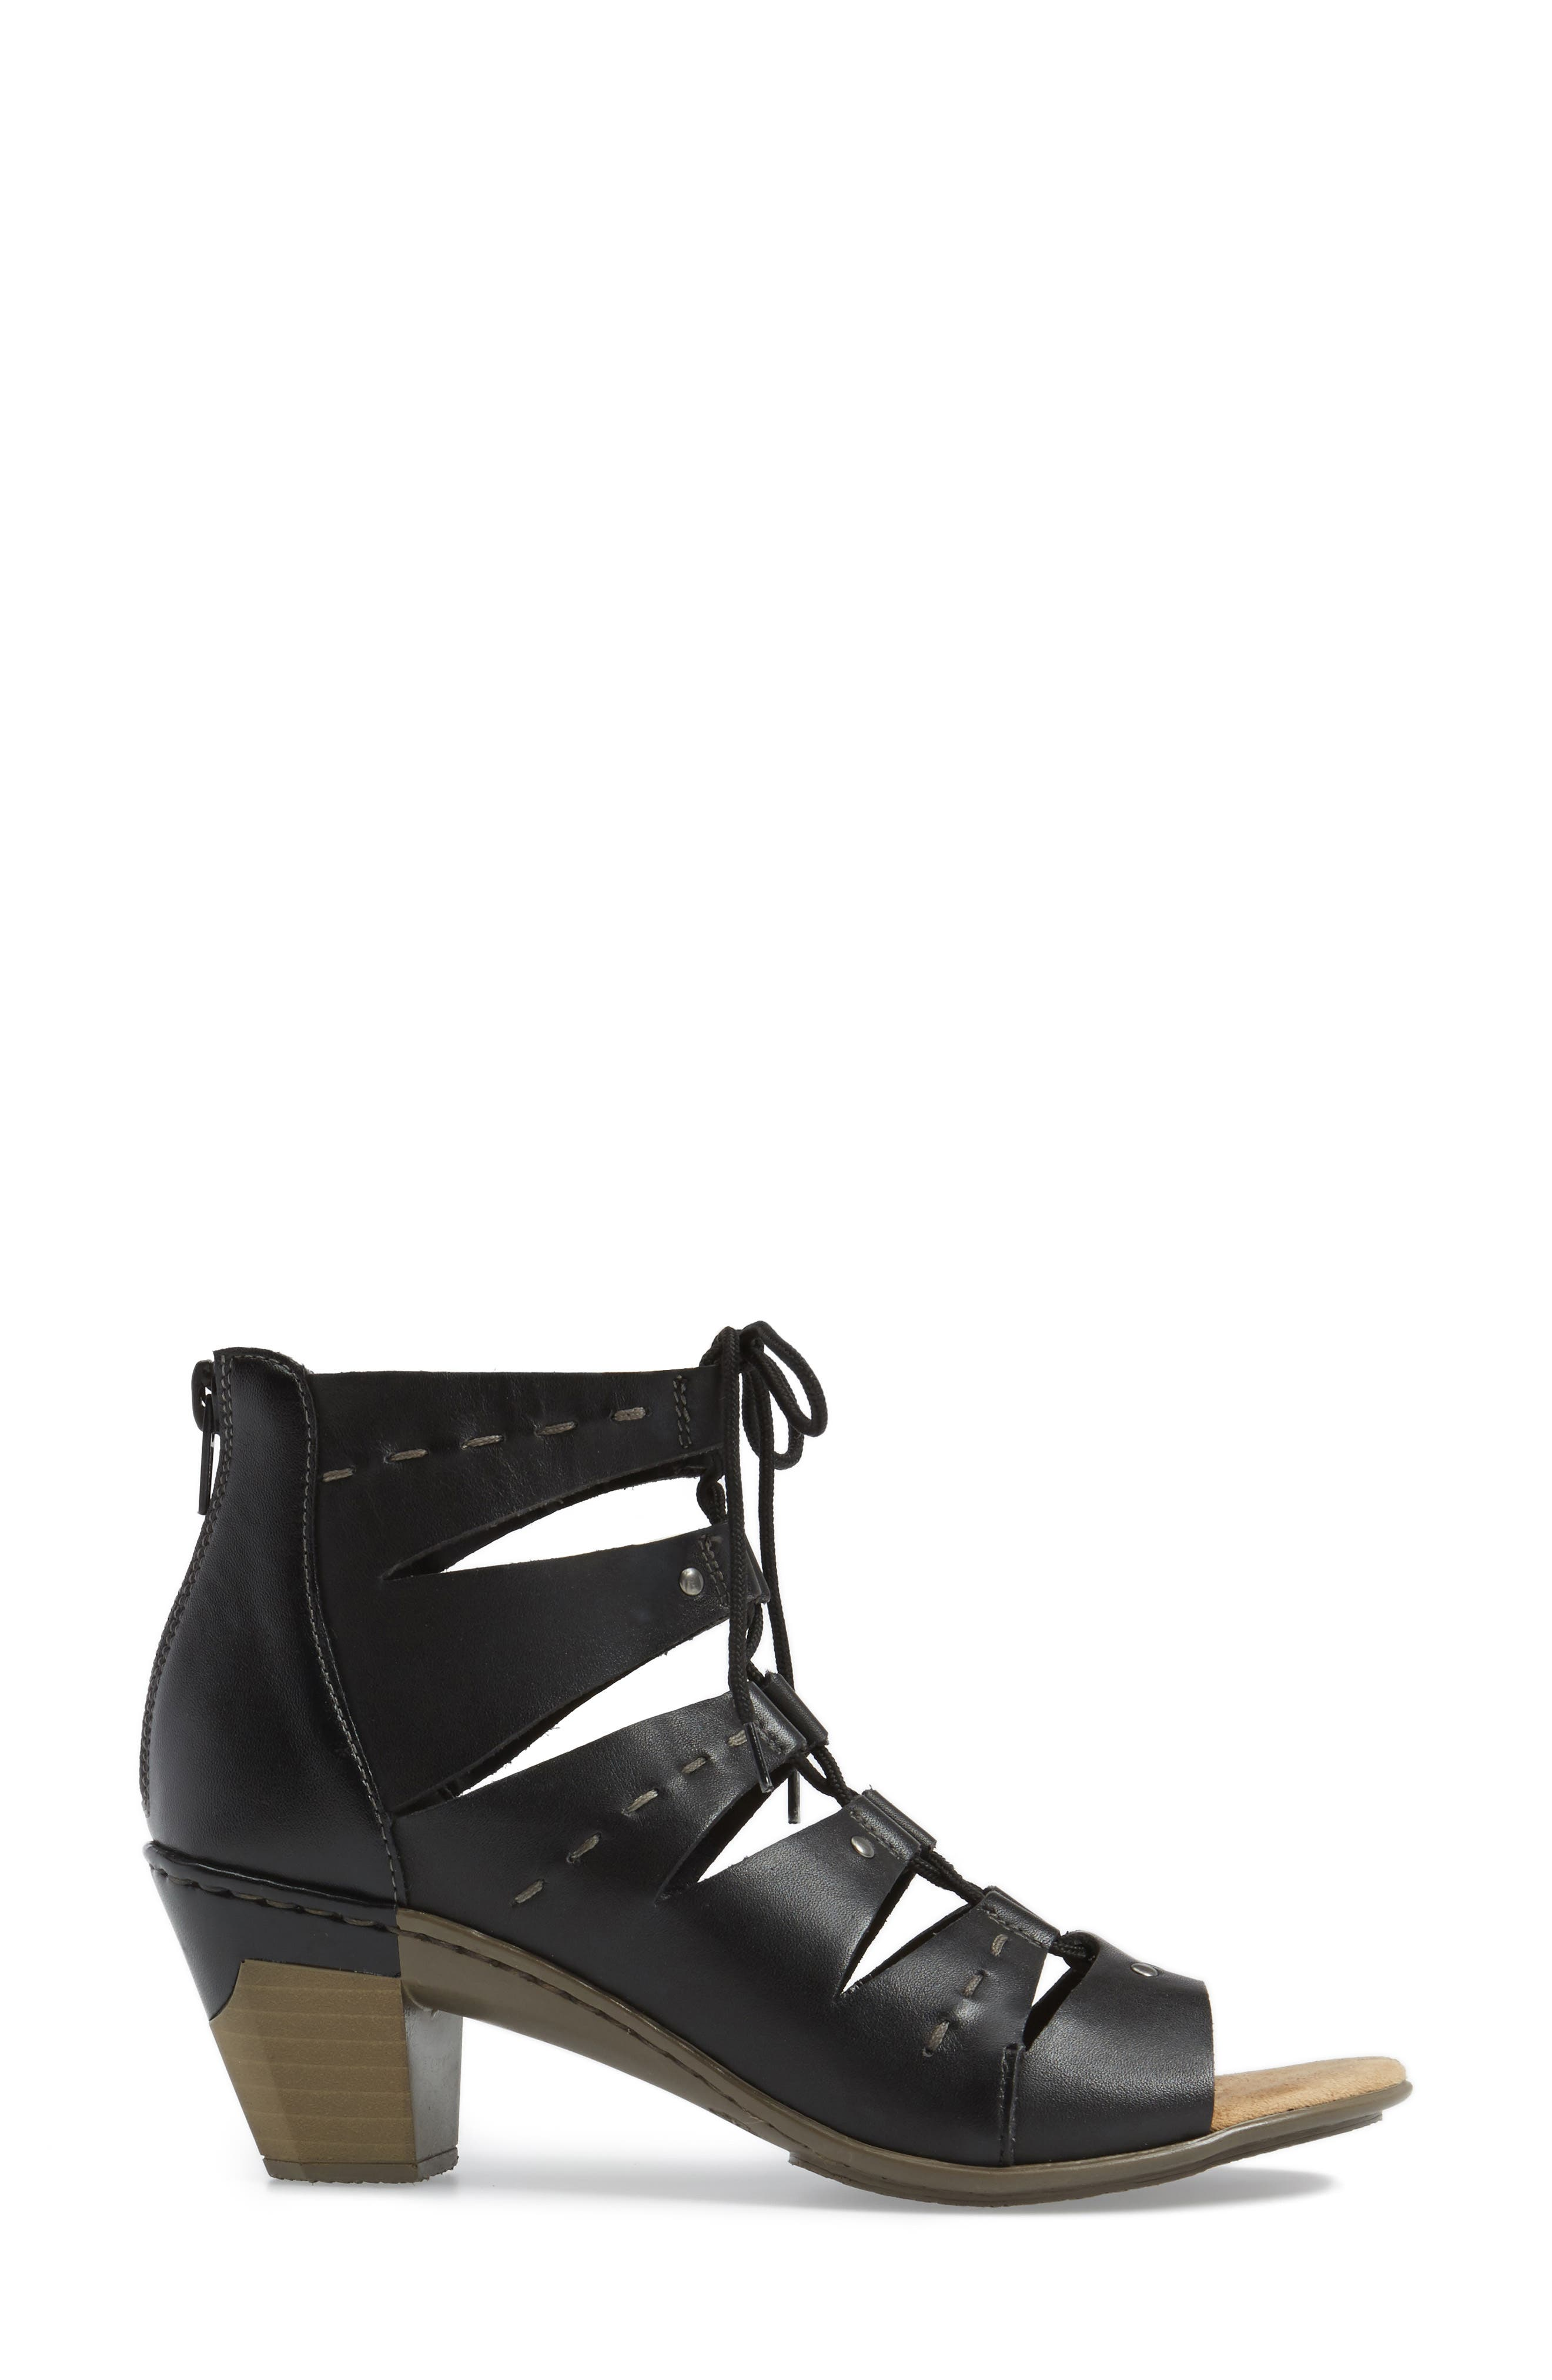 Aileen 99 Ghillie Cage Sandal,                             Alternate thumbnail 3, color,                             Black Leather